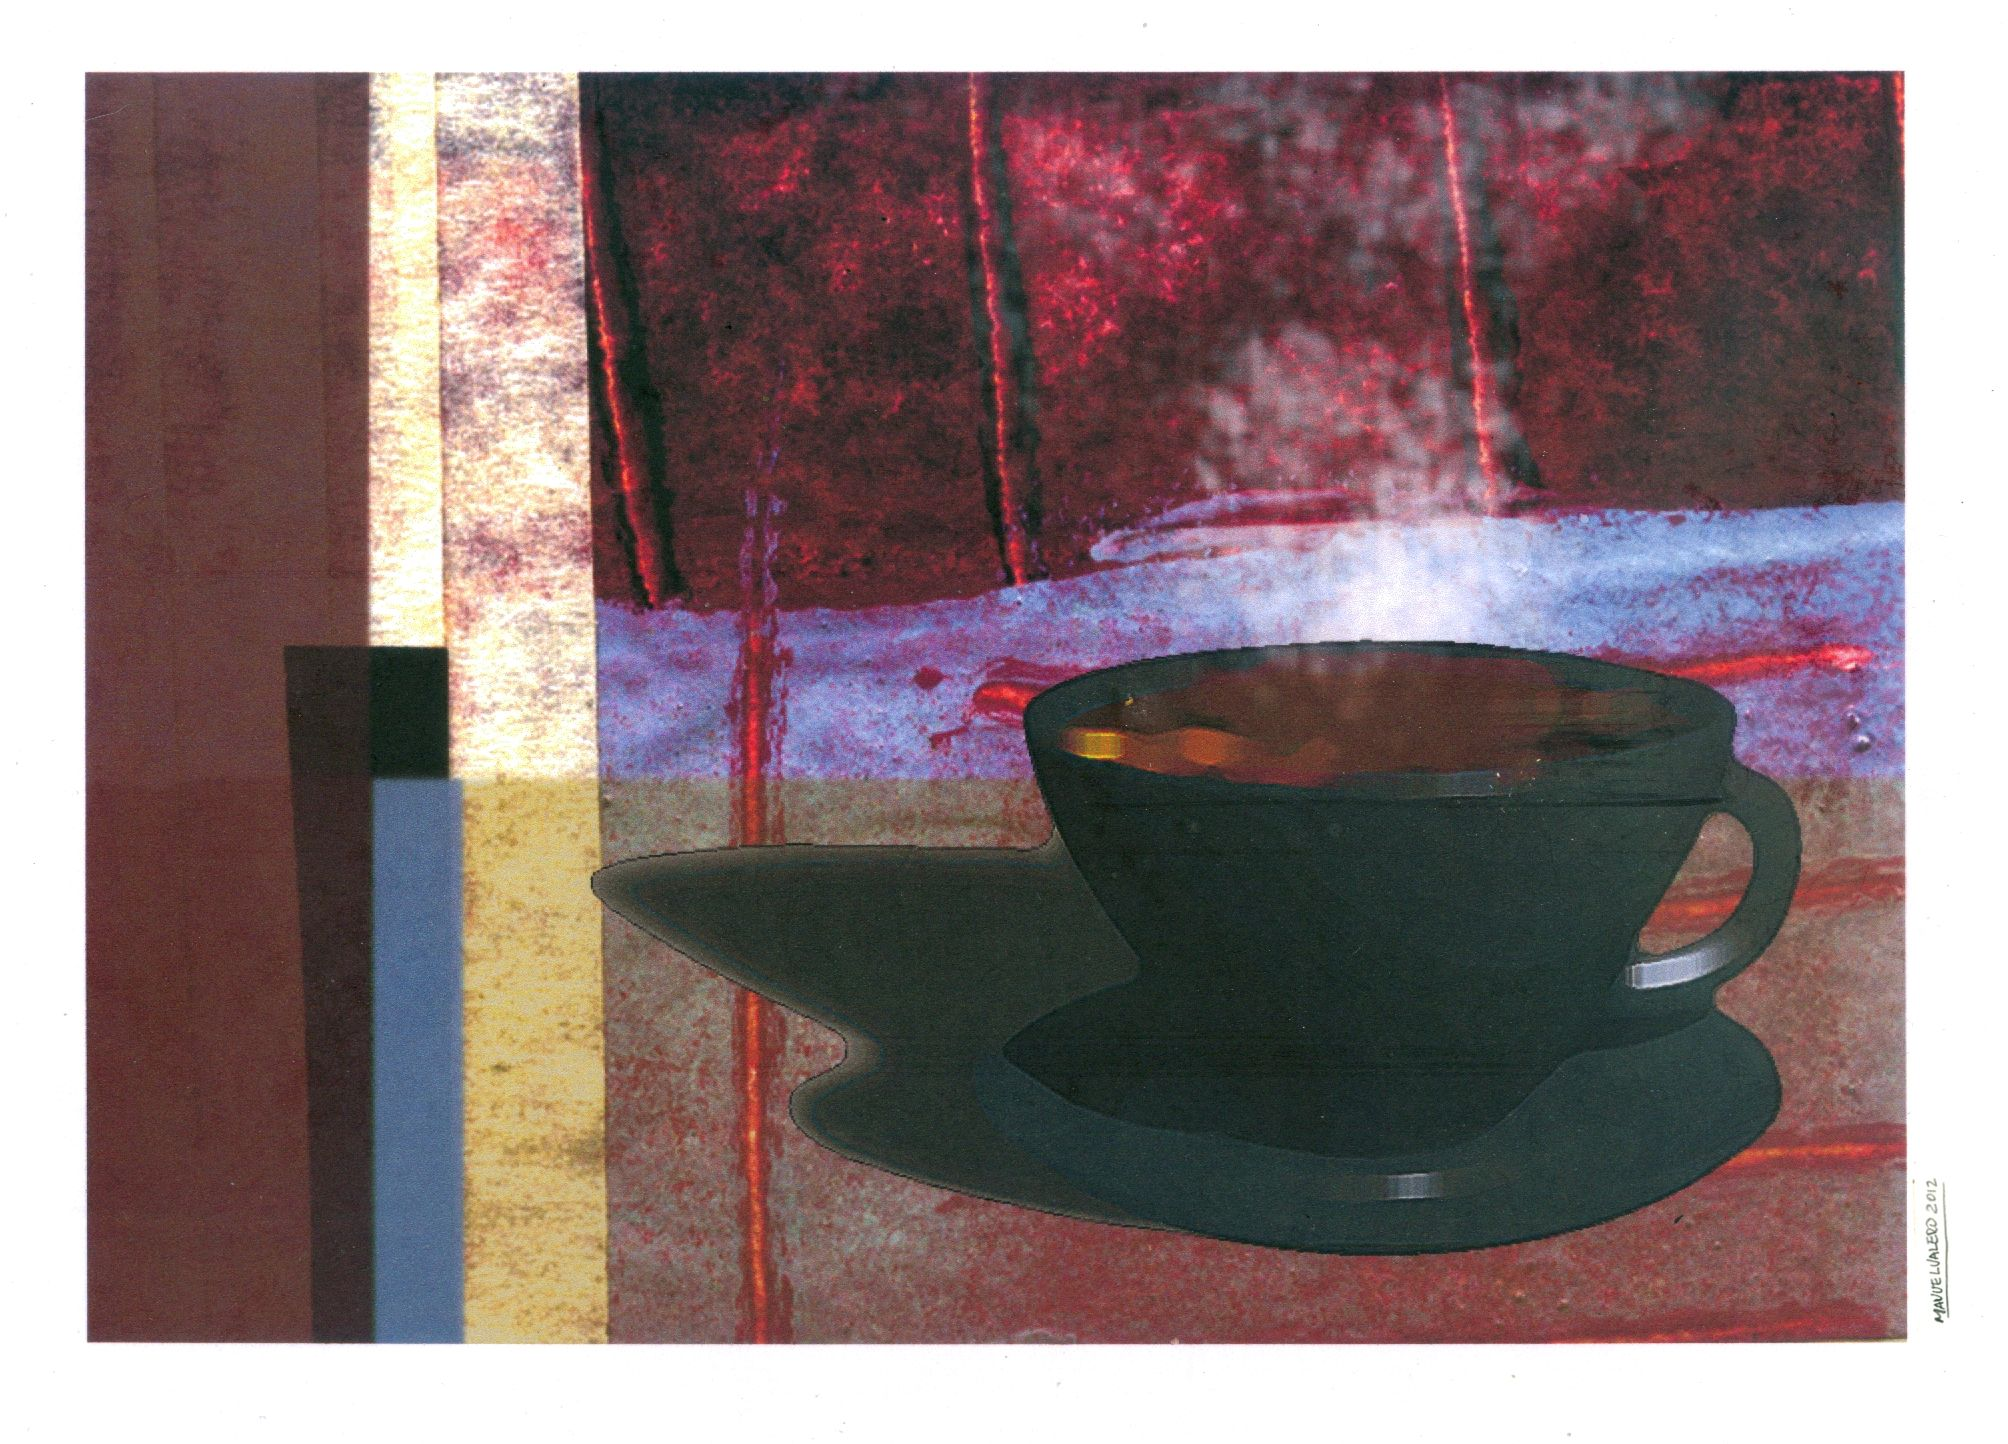 #30DayDrawingChallenge - Day26: Something i don't like : Black coffee with no sugar - Dibujo/Collage/Técnica Mixta